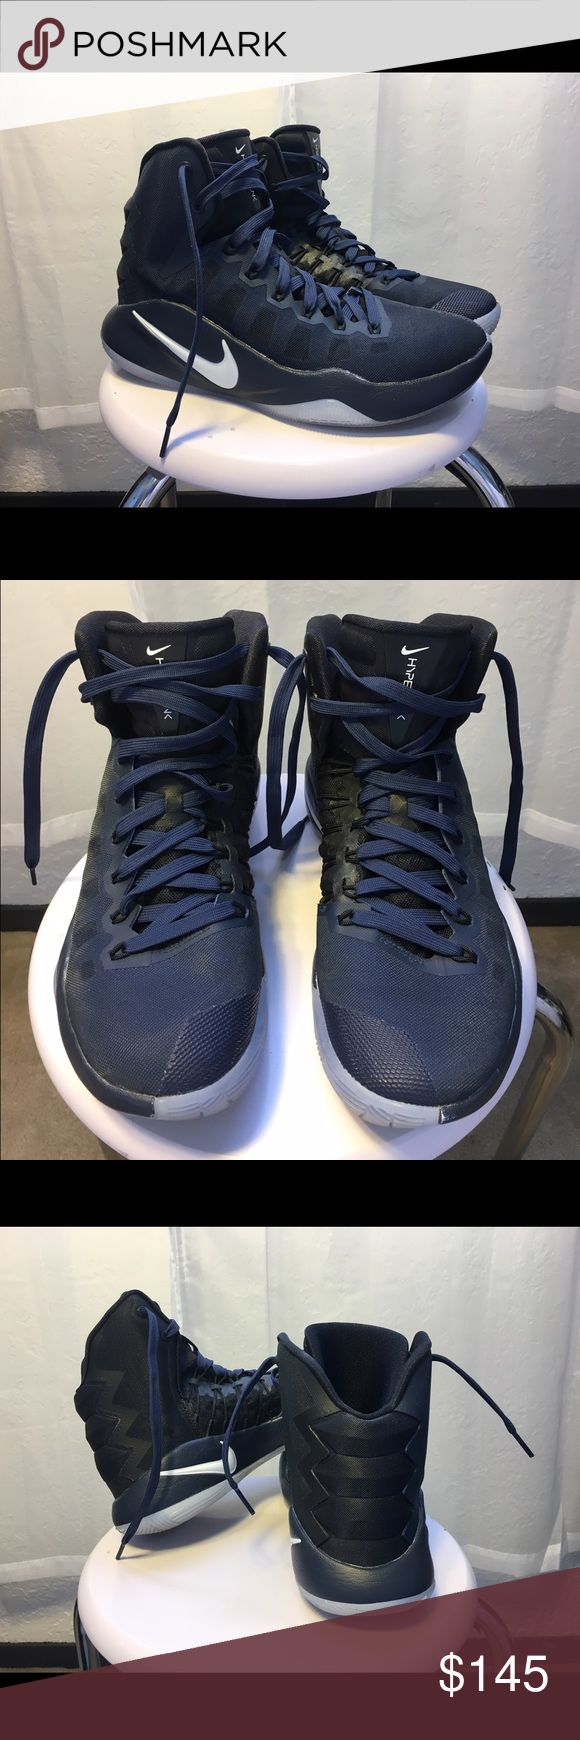 Women's Nike Hyperdunk basketball shoe size 8.5 Brand new Nike Hyperdunks • Barely worn • Quality basketball shoes • Indoor court shoes • Navy blue and black with white Nike symbol, silver bottoms Nike Shoes Athletic Shoes